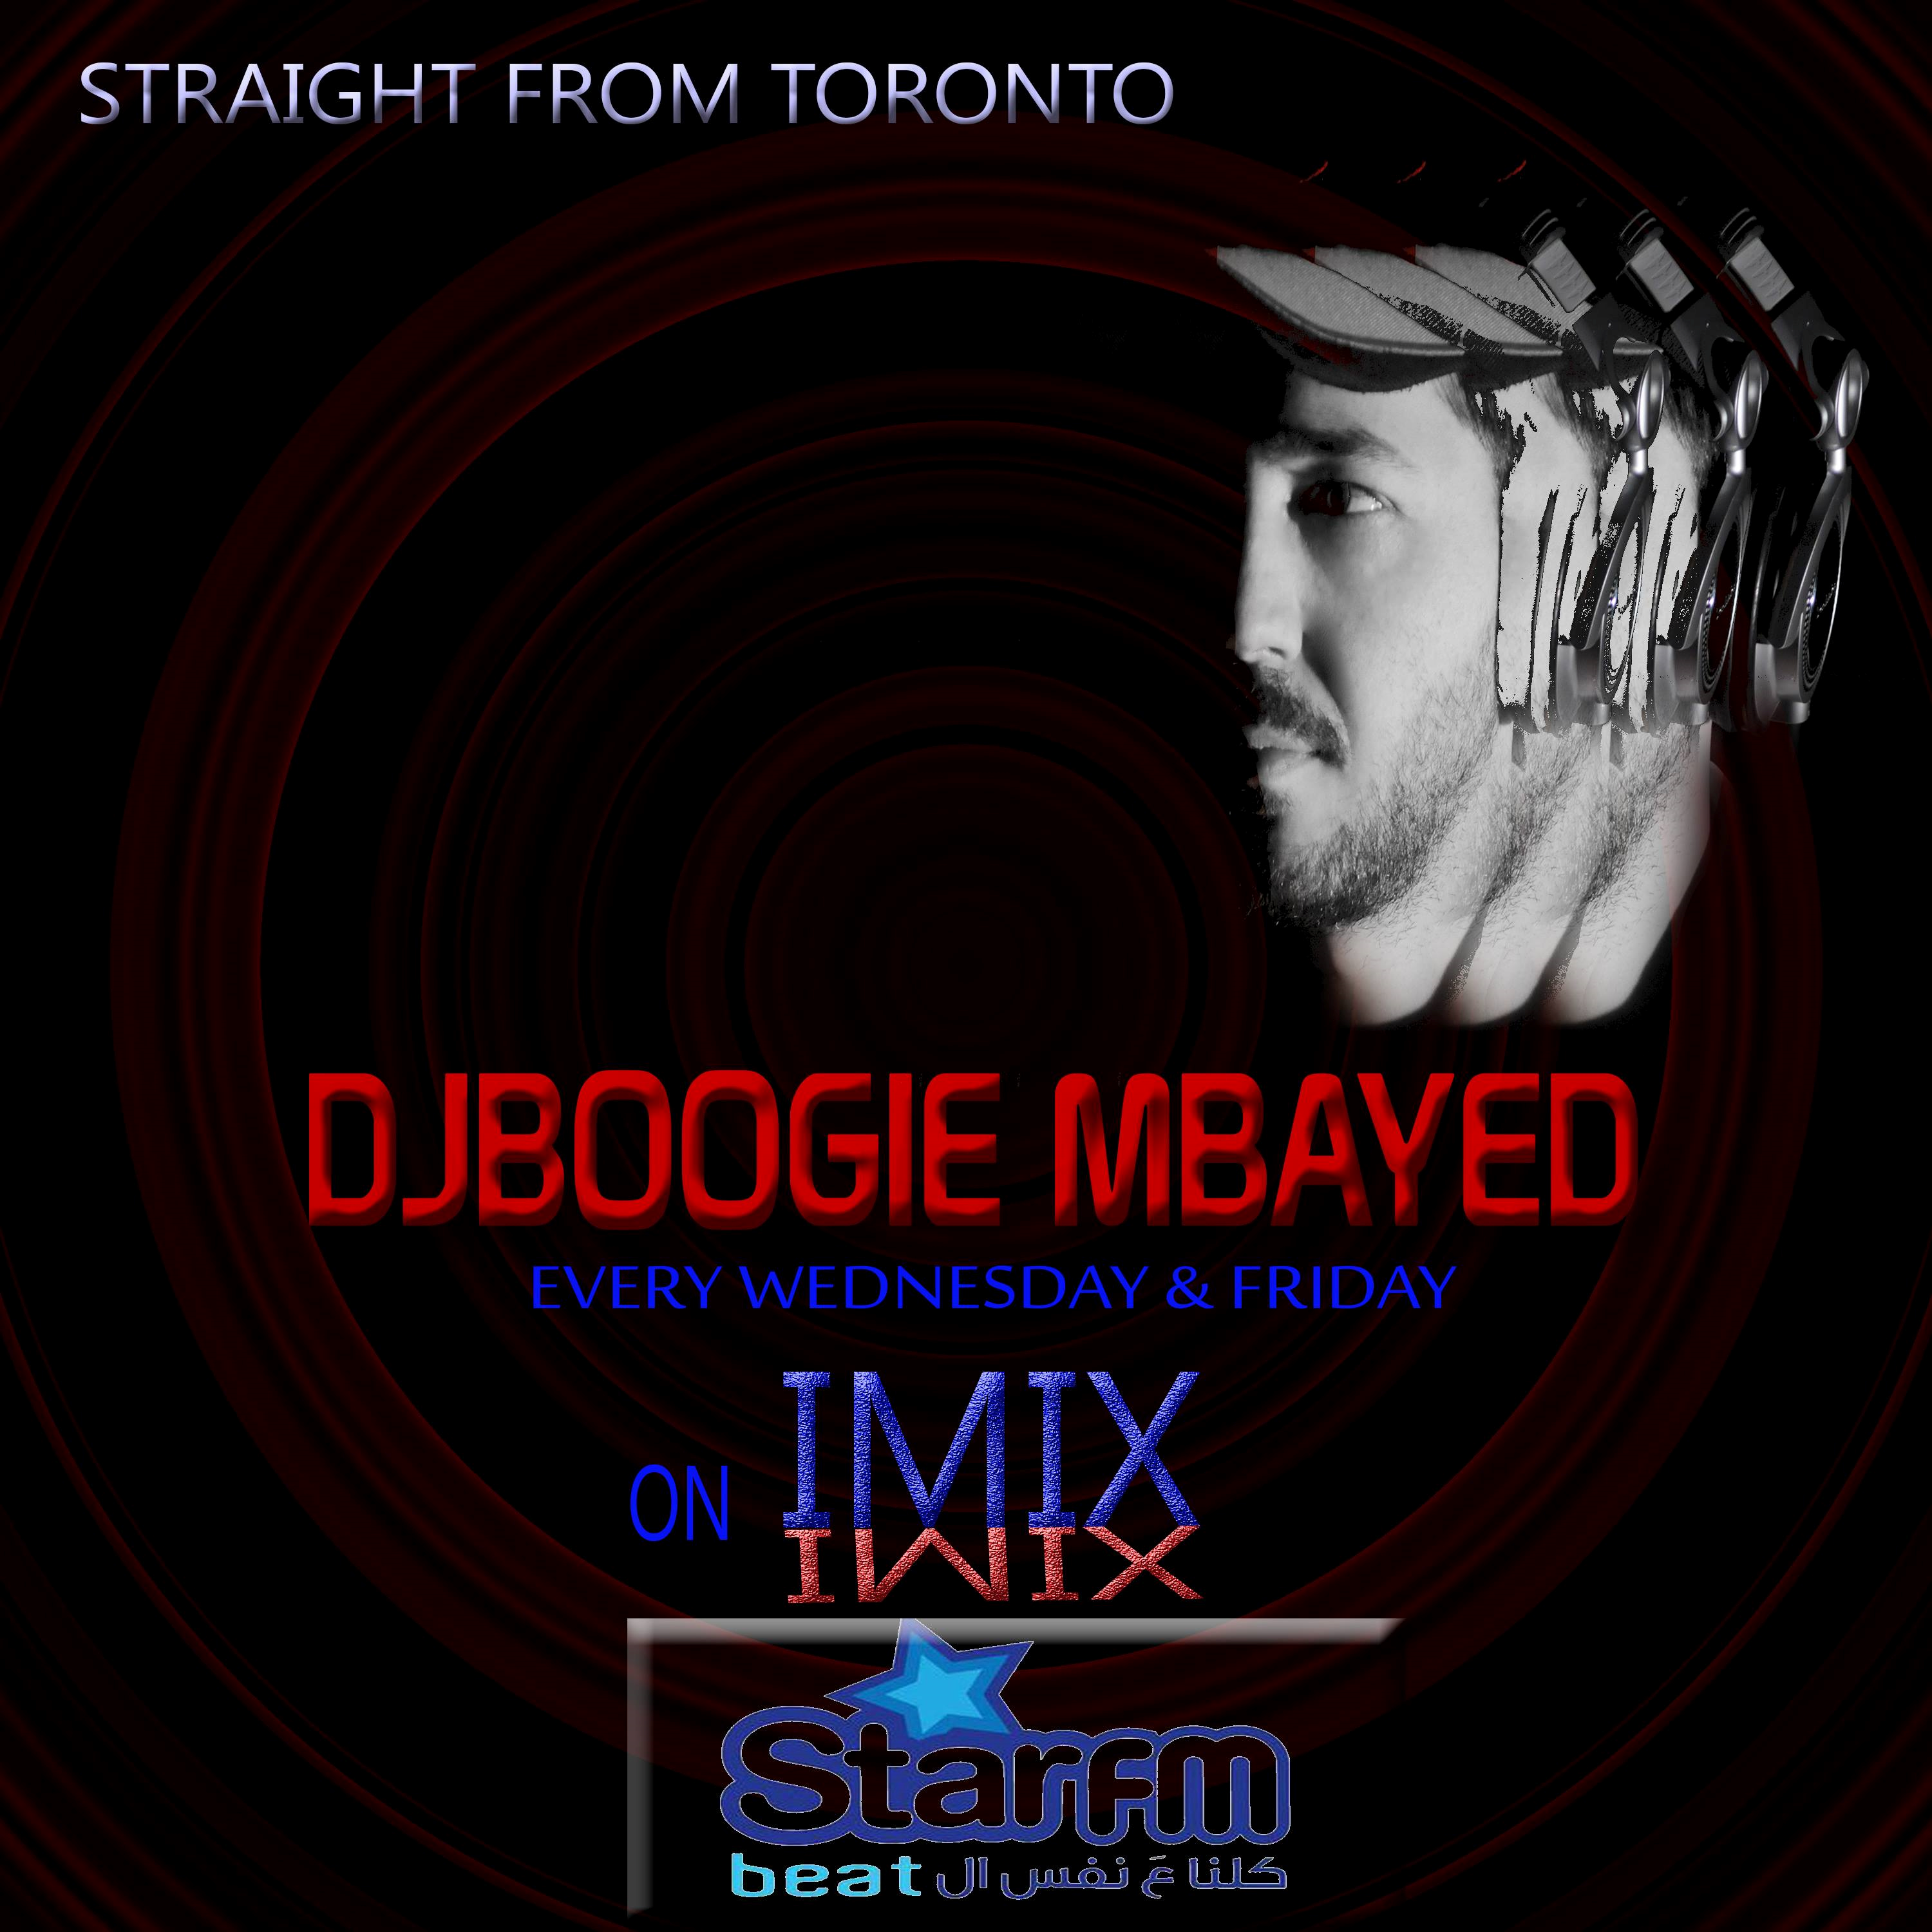 IMIX BOOGIE DEEP SESSION